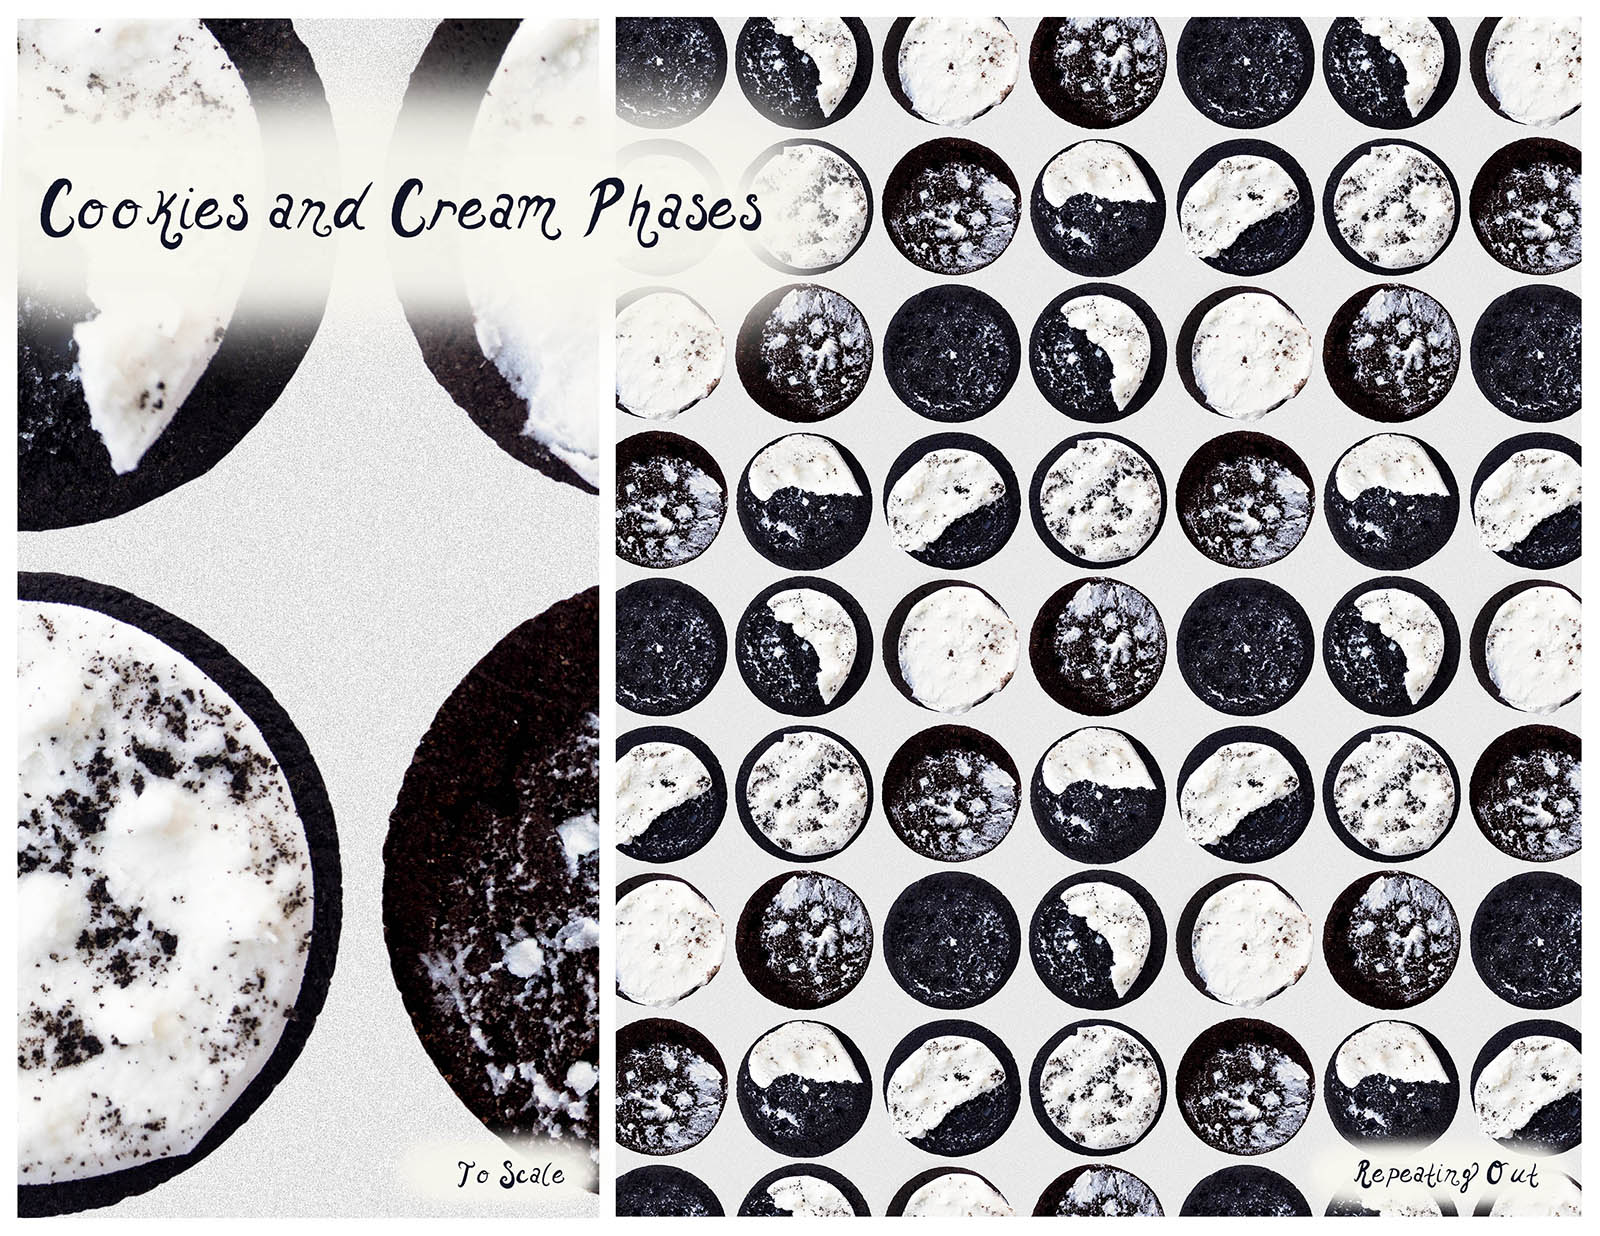 Cookies & Cream Phases